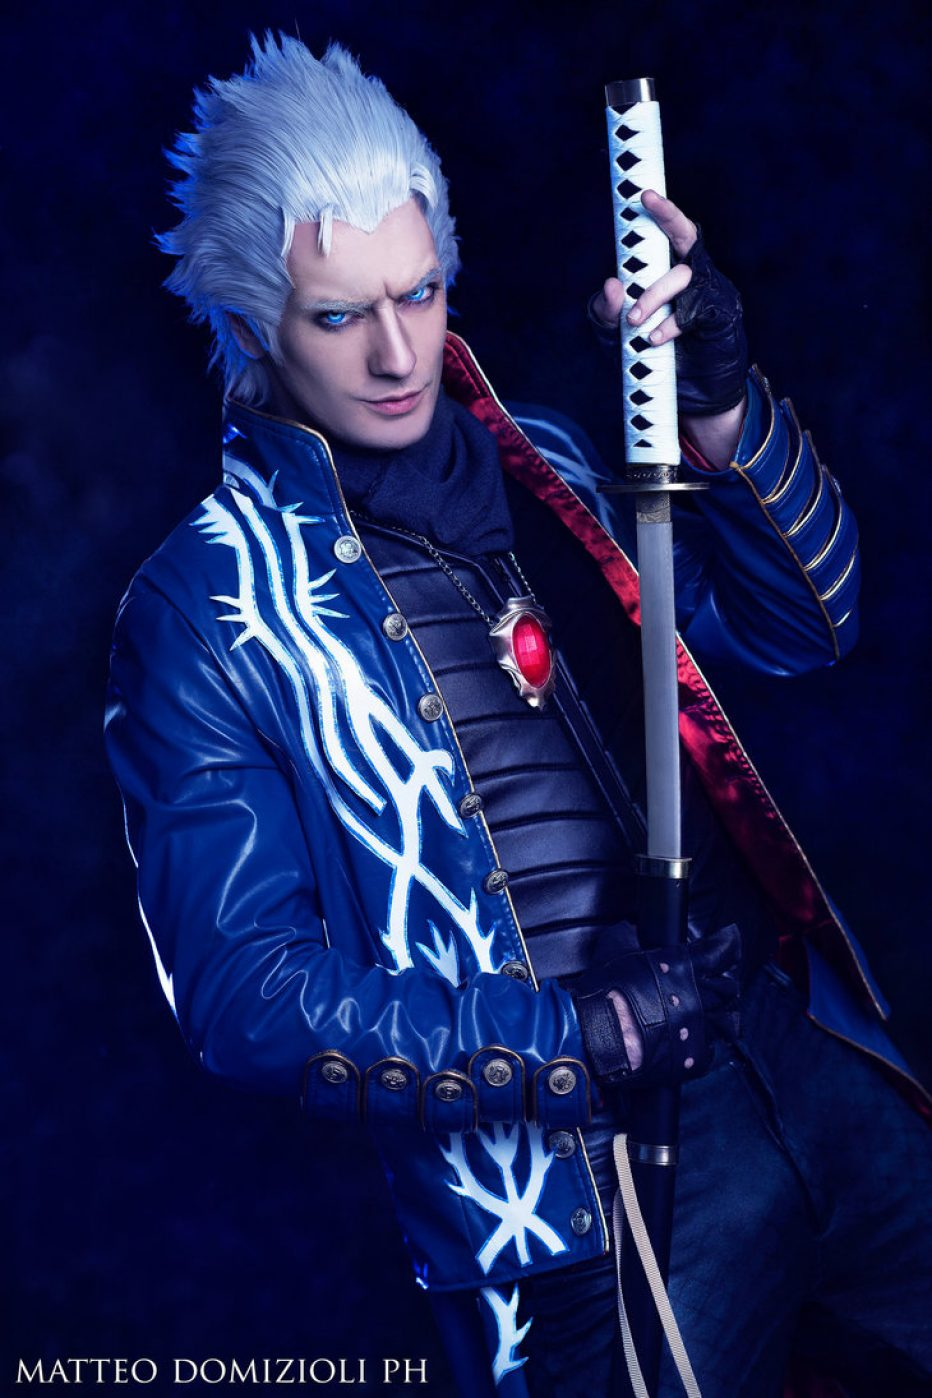 Devil-May-Cry-Vergil-Cosplay-Gamers-Heroes-4.jpg